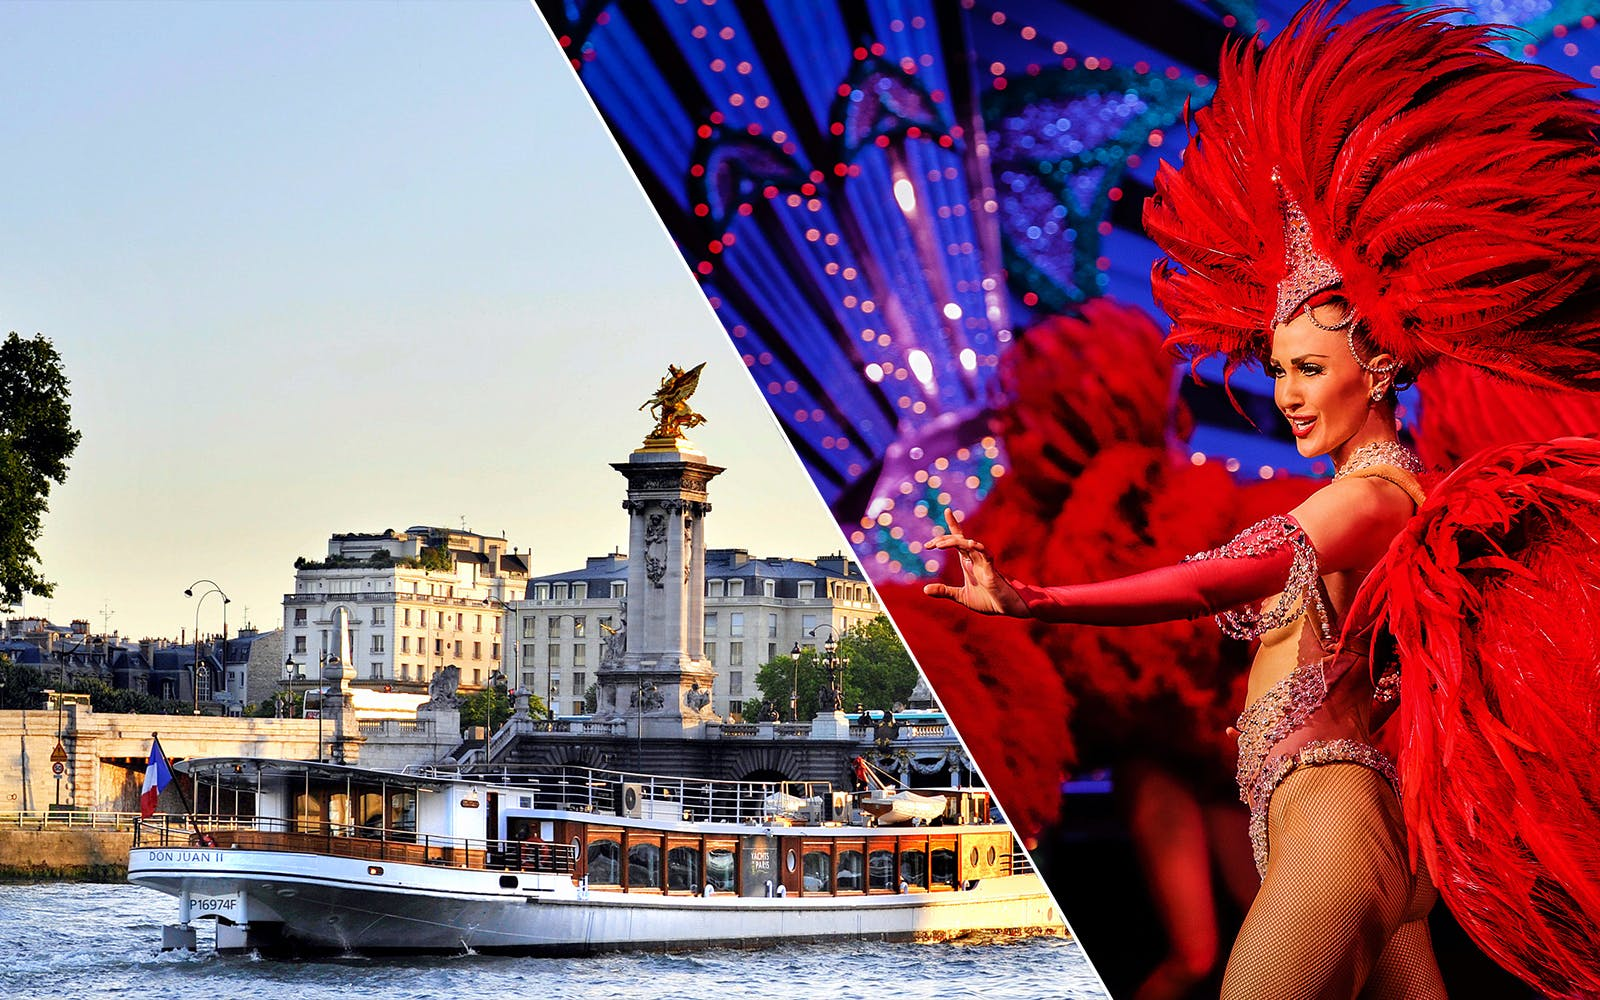 moulin rouge show with champagne + seine river cruise-1